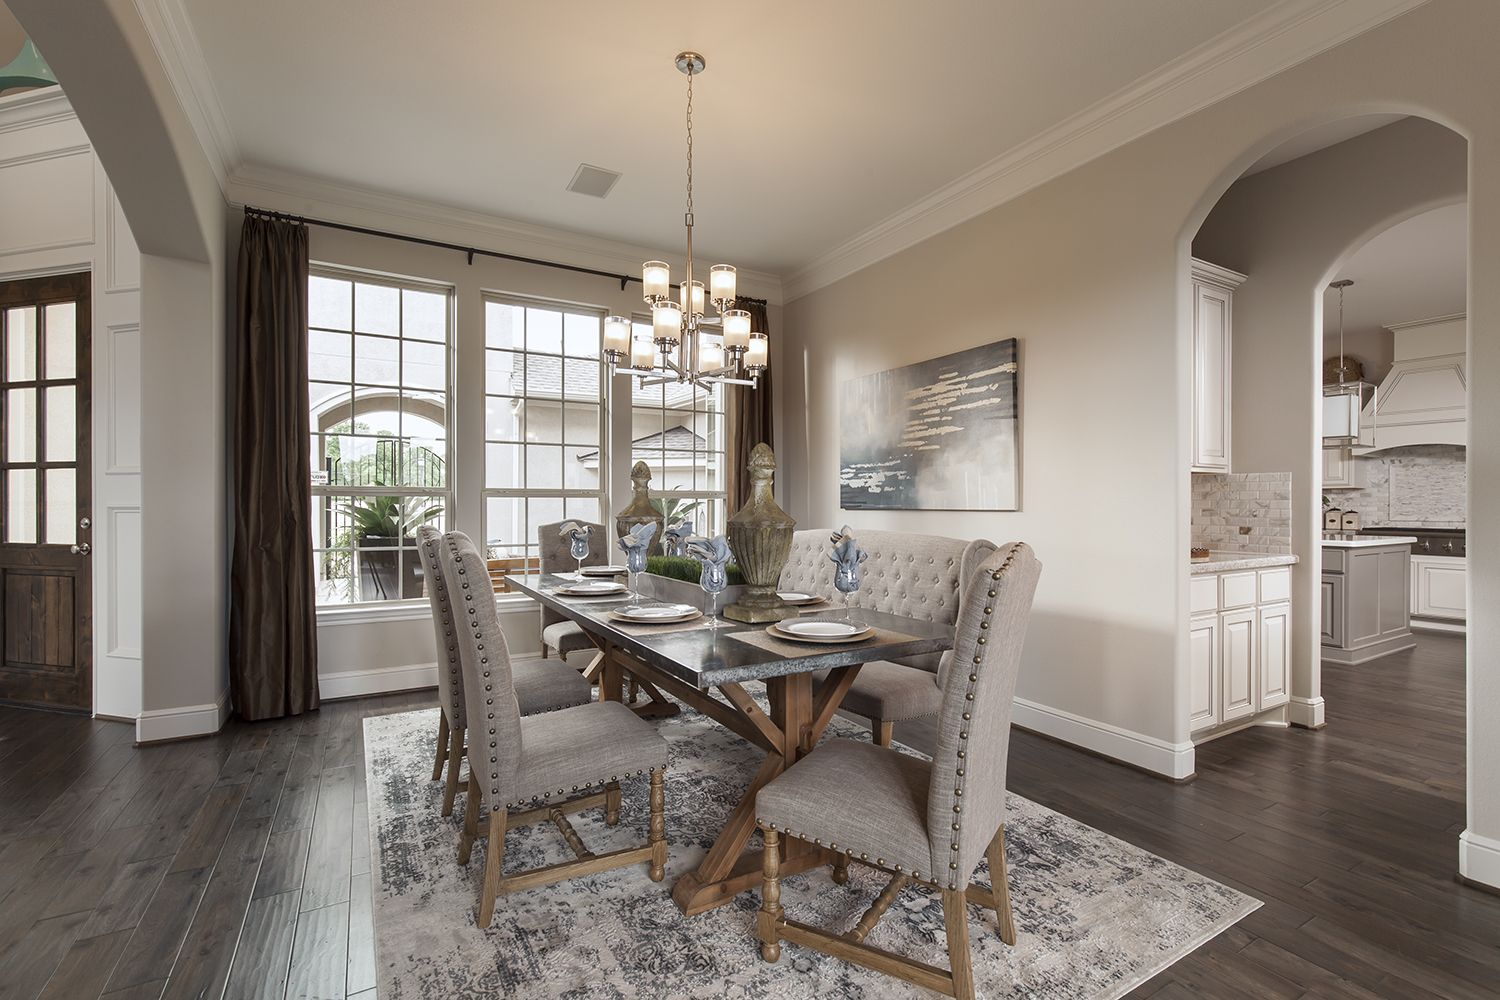 The new homes for sale at Bridlecreek